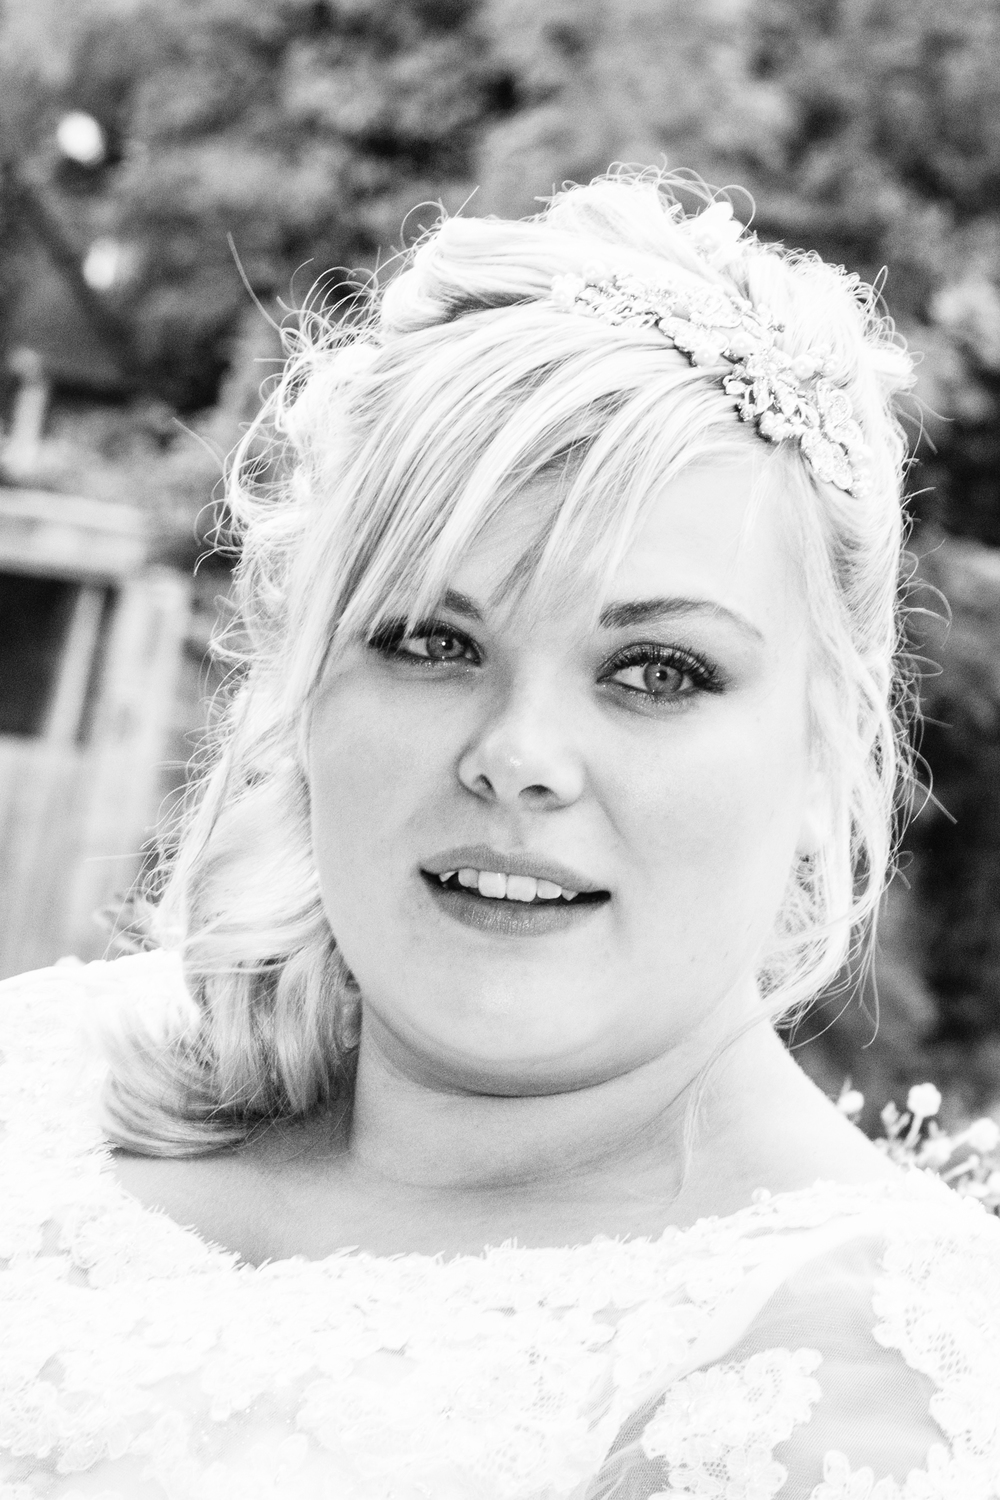 22-06-2013_Alex_Pople_Jess_Lewis_Wedding_EDITED_00020.jpg